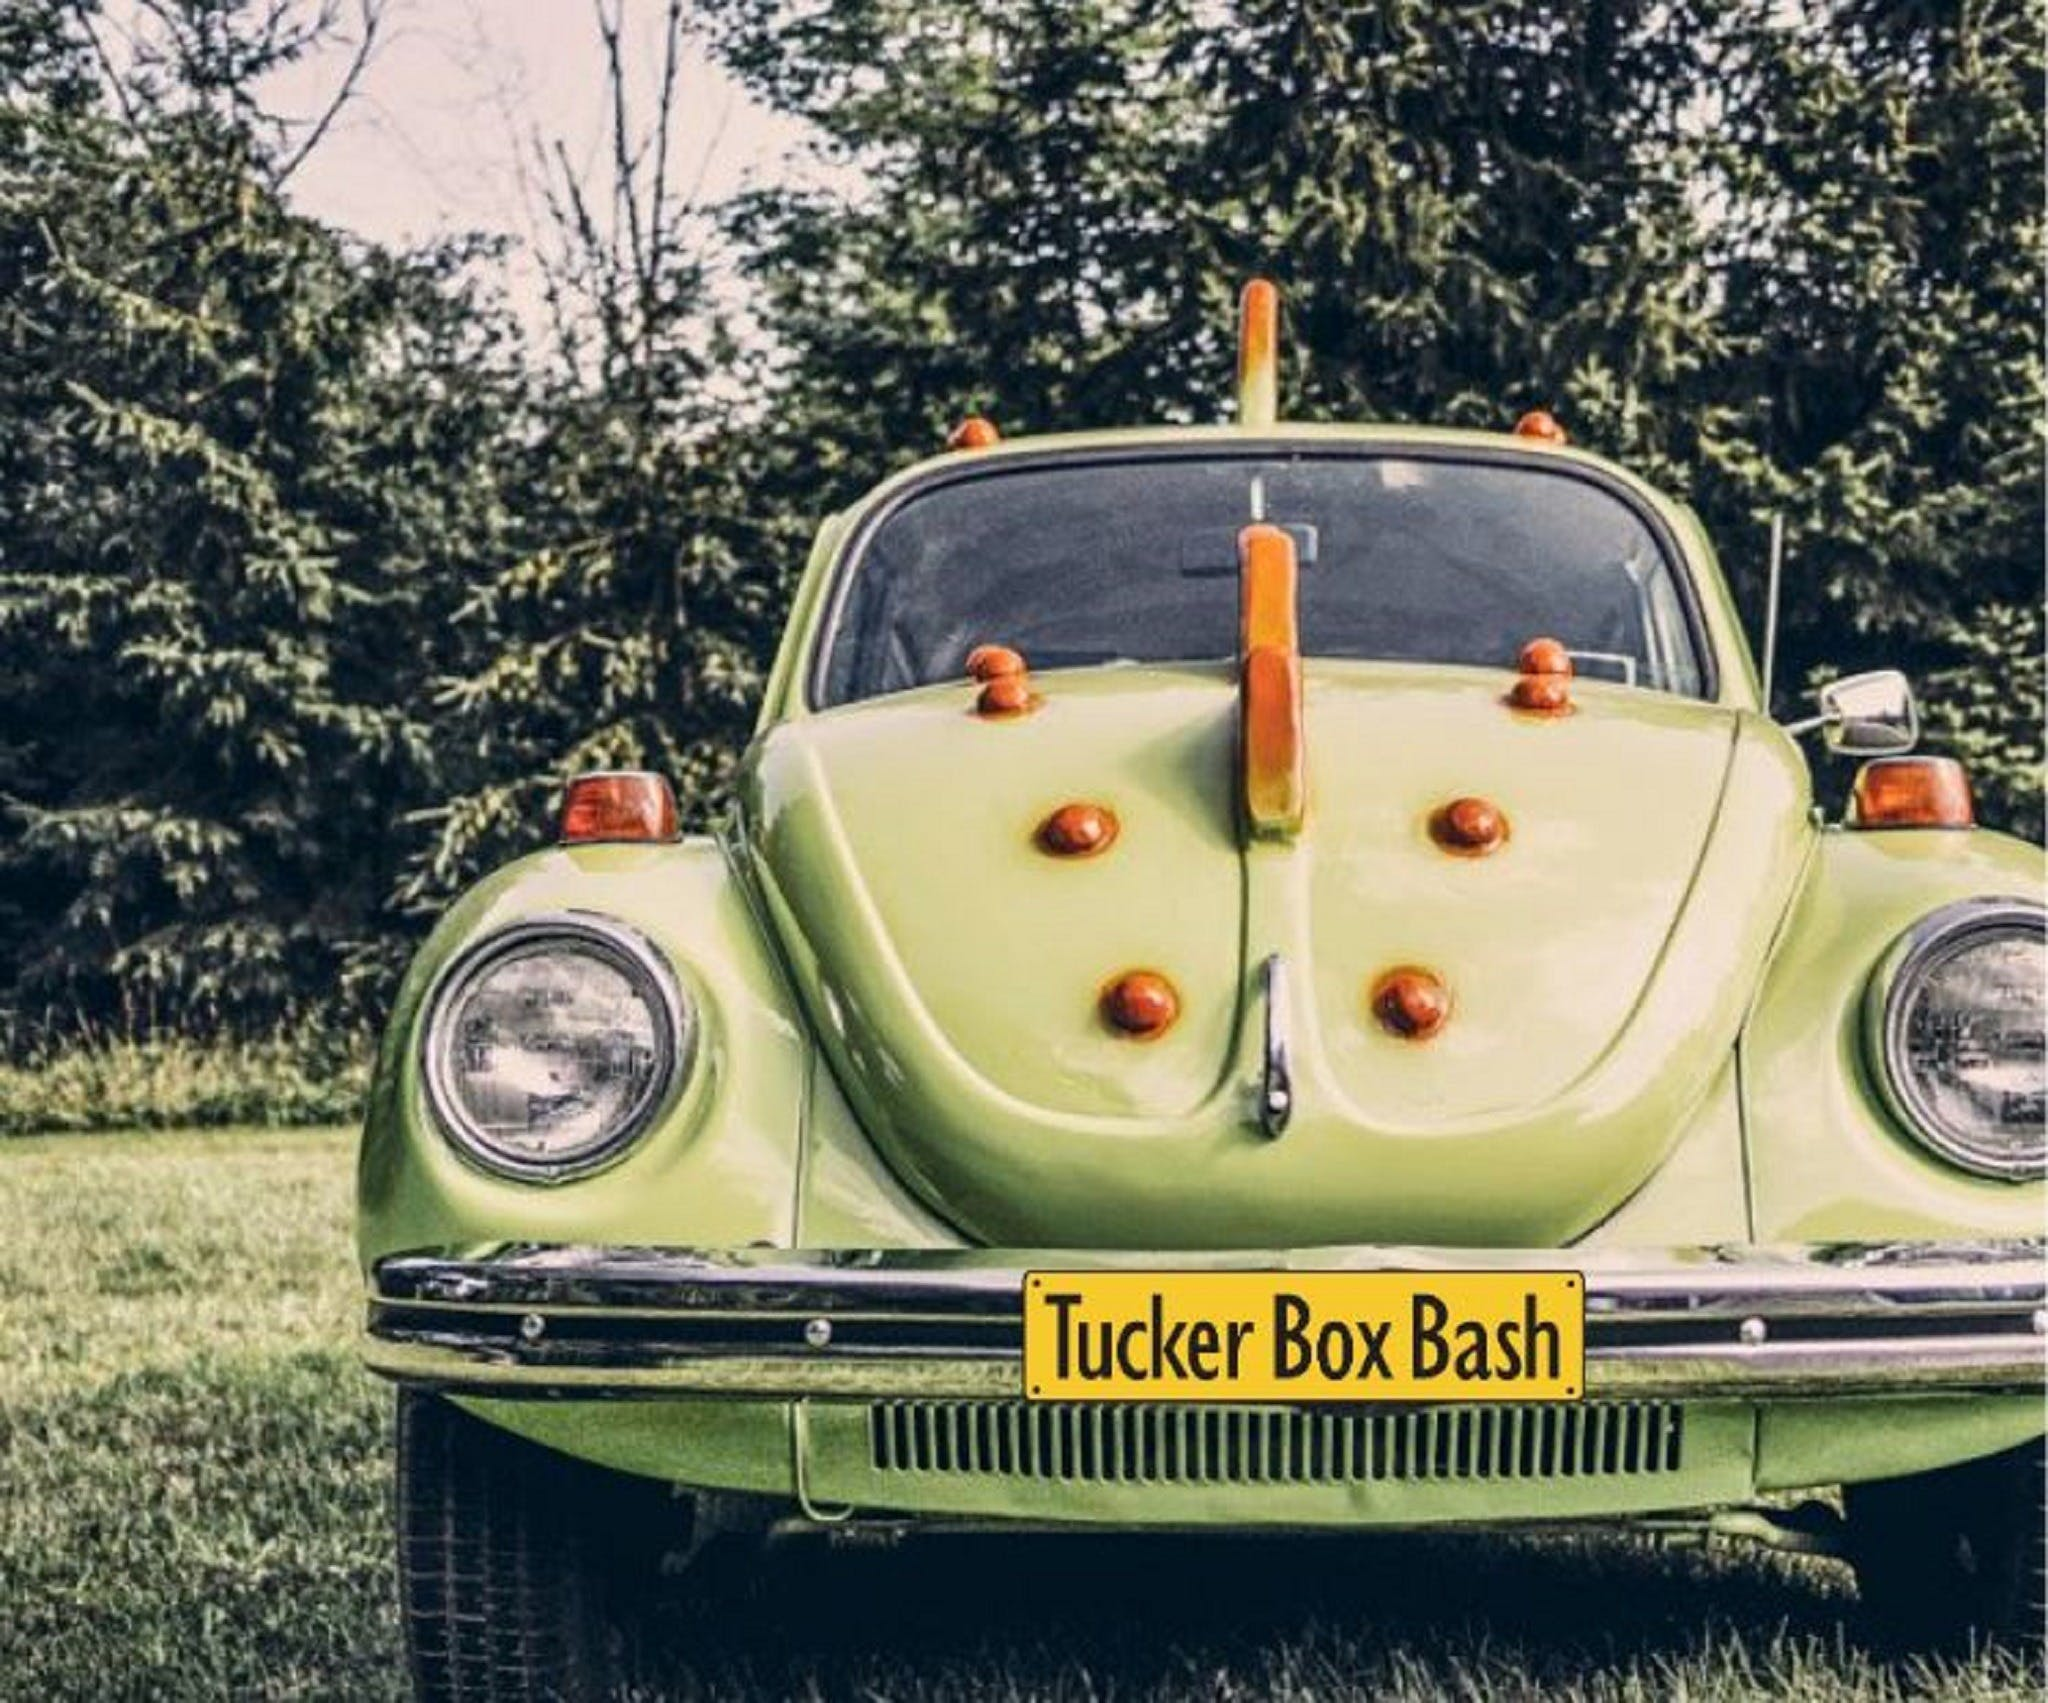 Tucker Box Bash - VIC Tourism